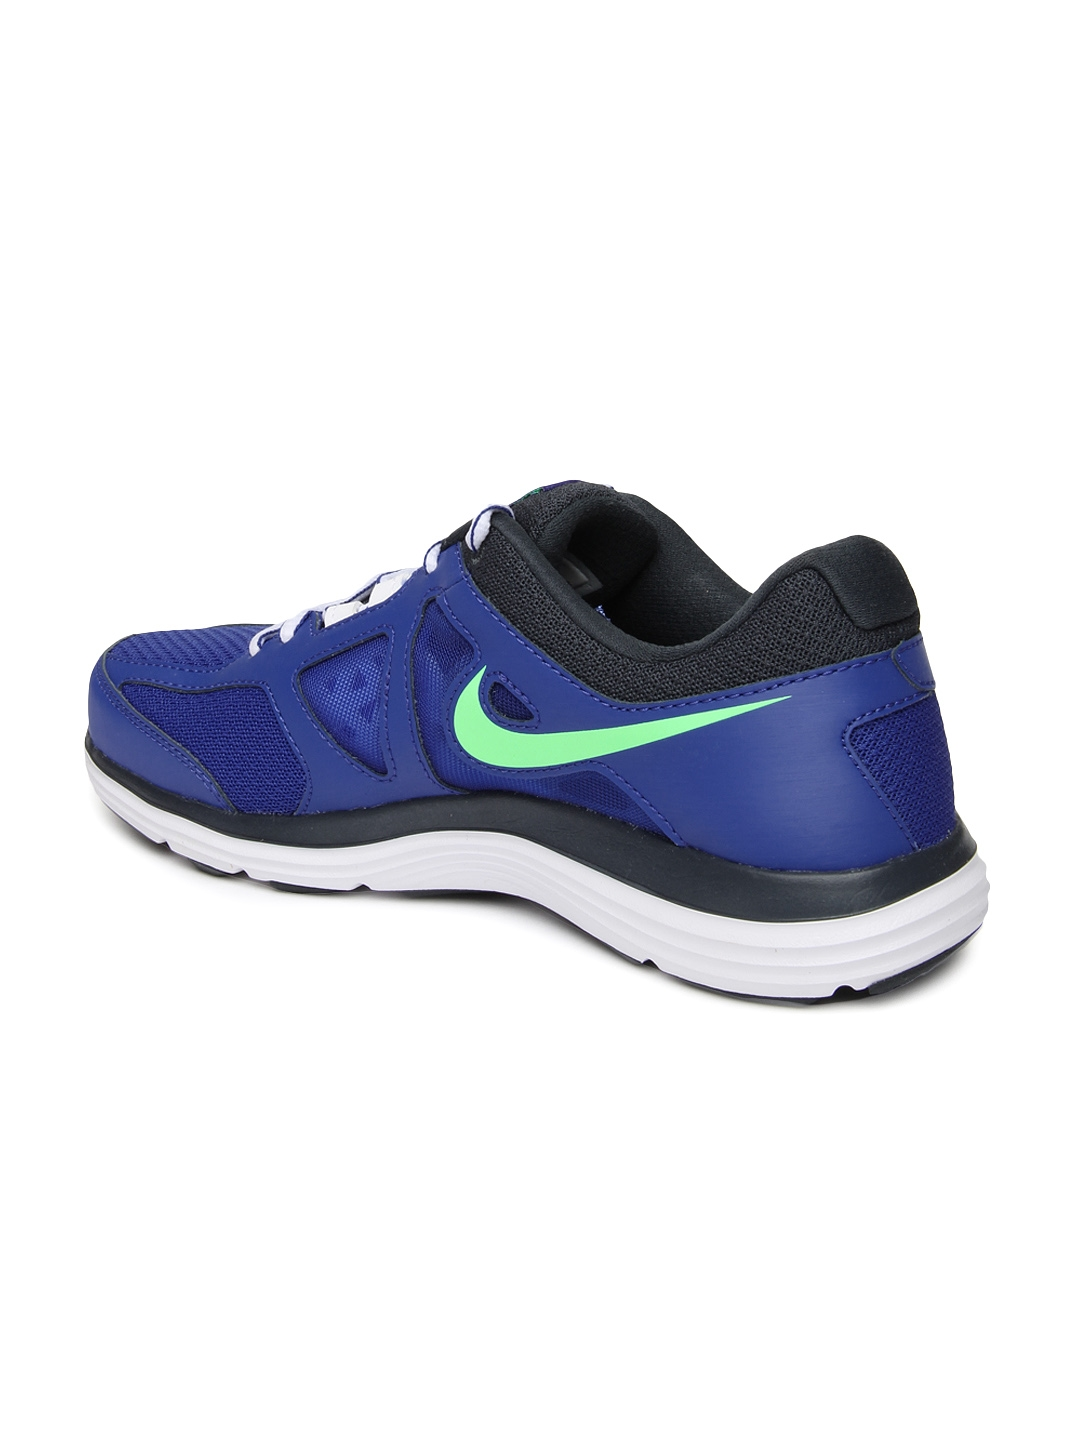 new products 8b379 72ece Nike Men Blue Dual Fusion Lite 2 MSL Running Shoes